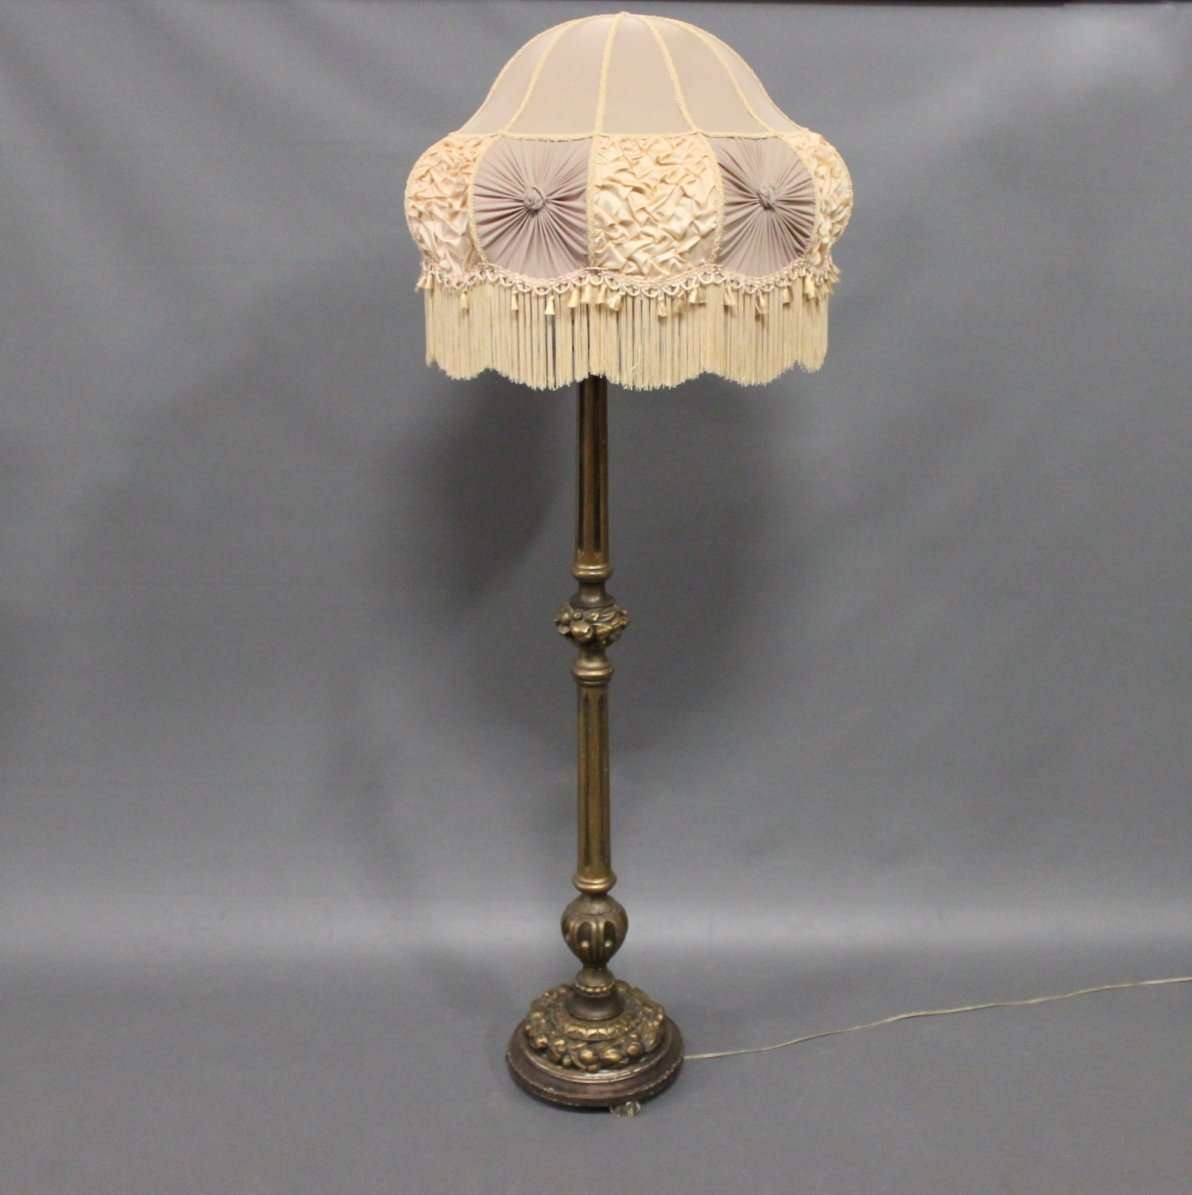 Antique Floor Lamp in Gilded Wood, 1920s for sale at Pamono